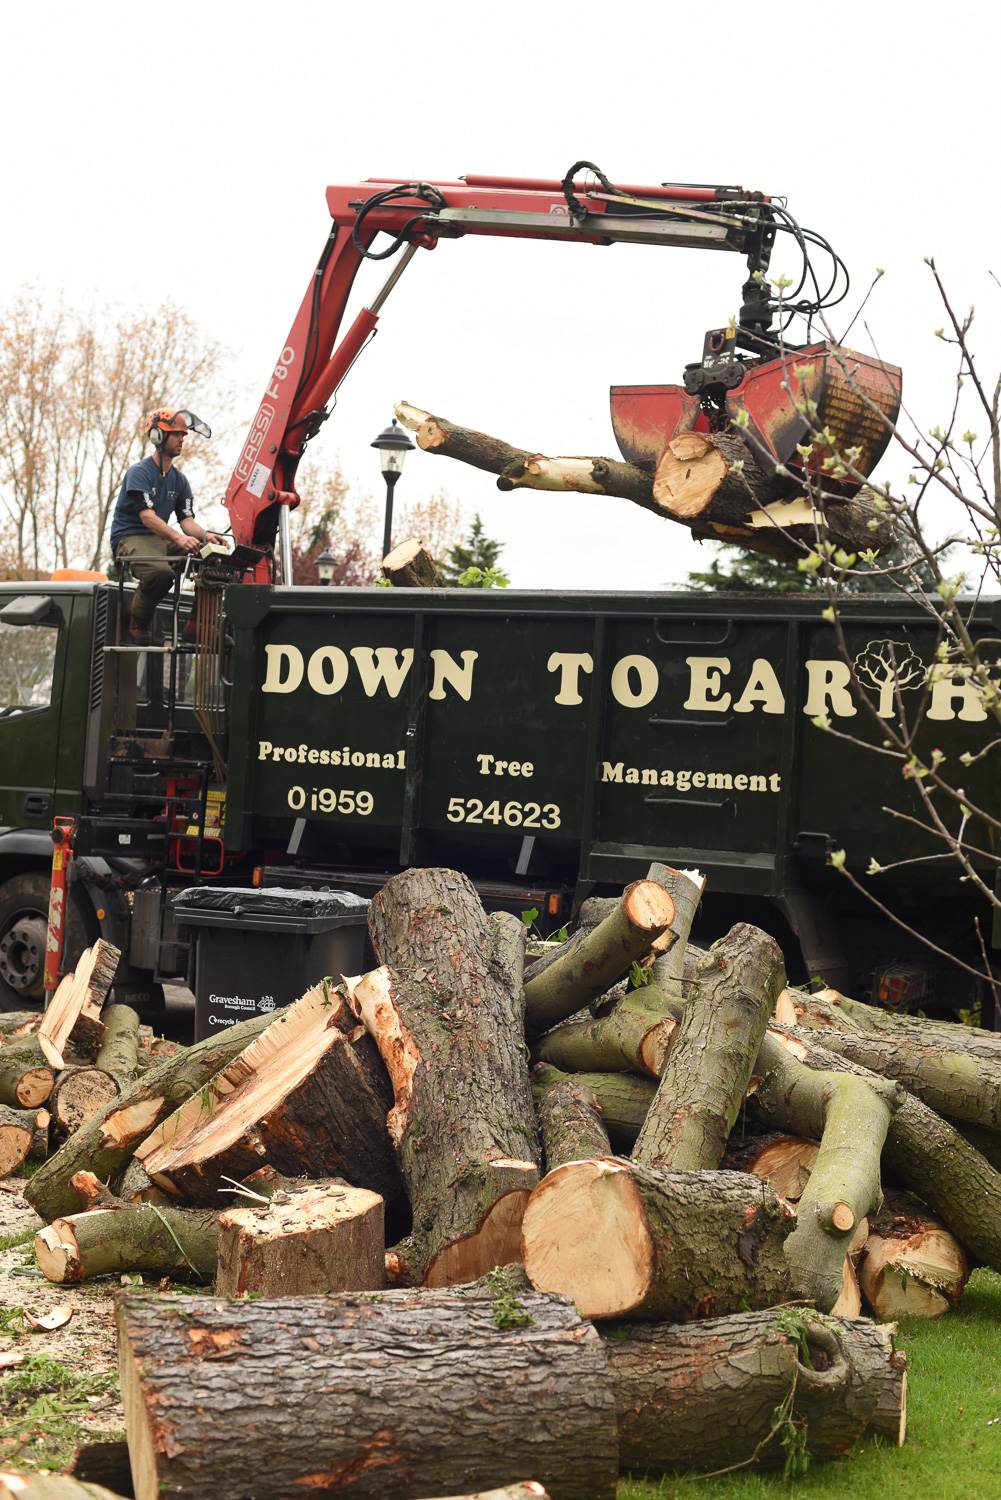 Tree Surgeon and Maintenance Services in Tooting